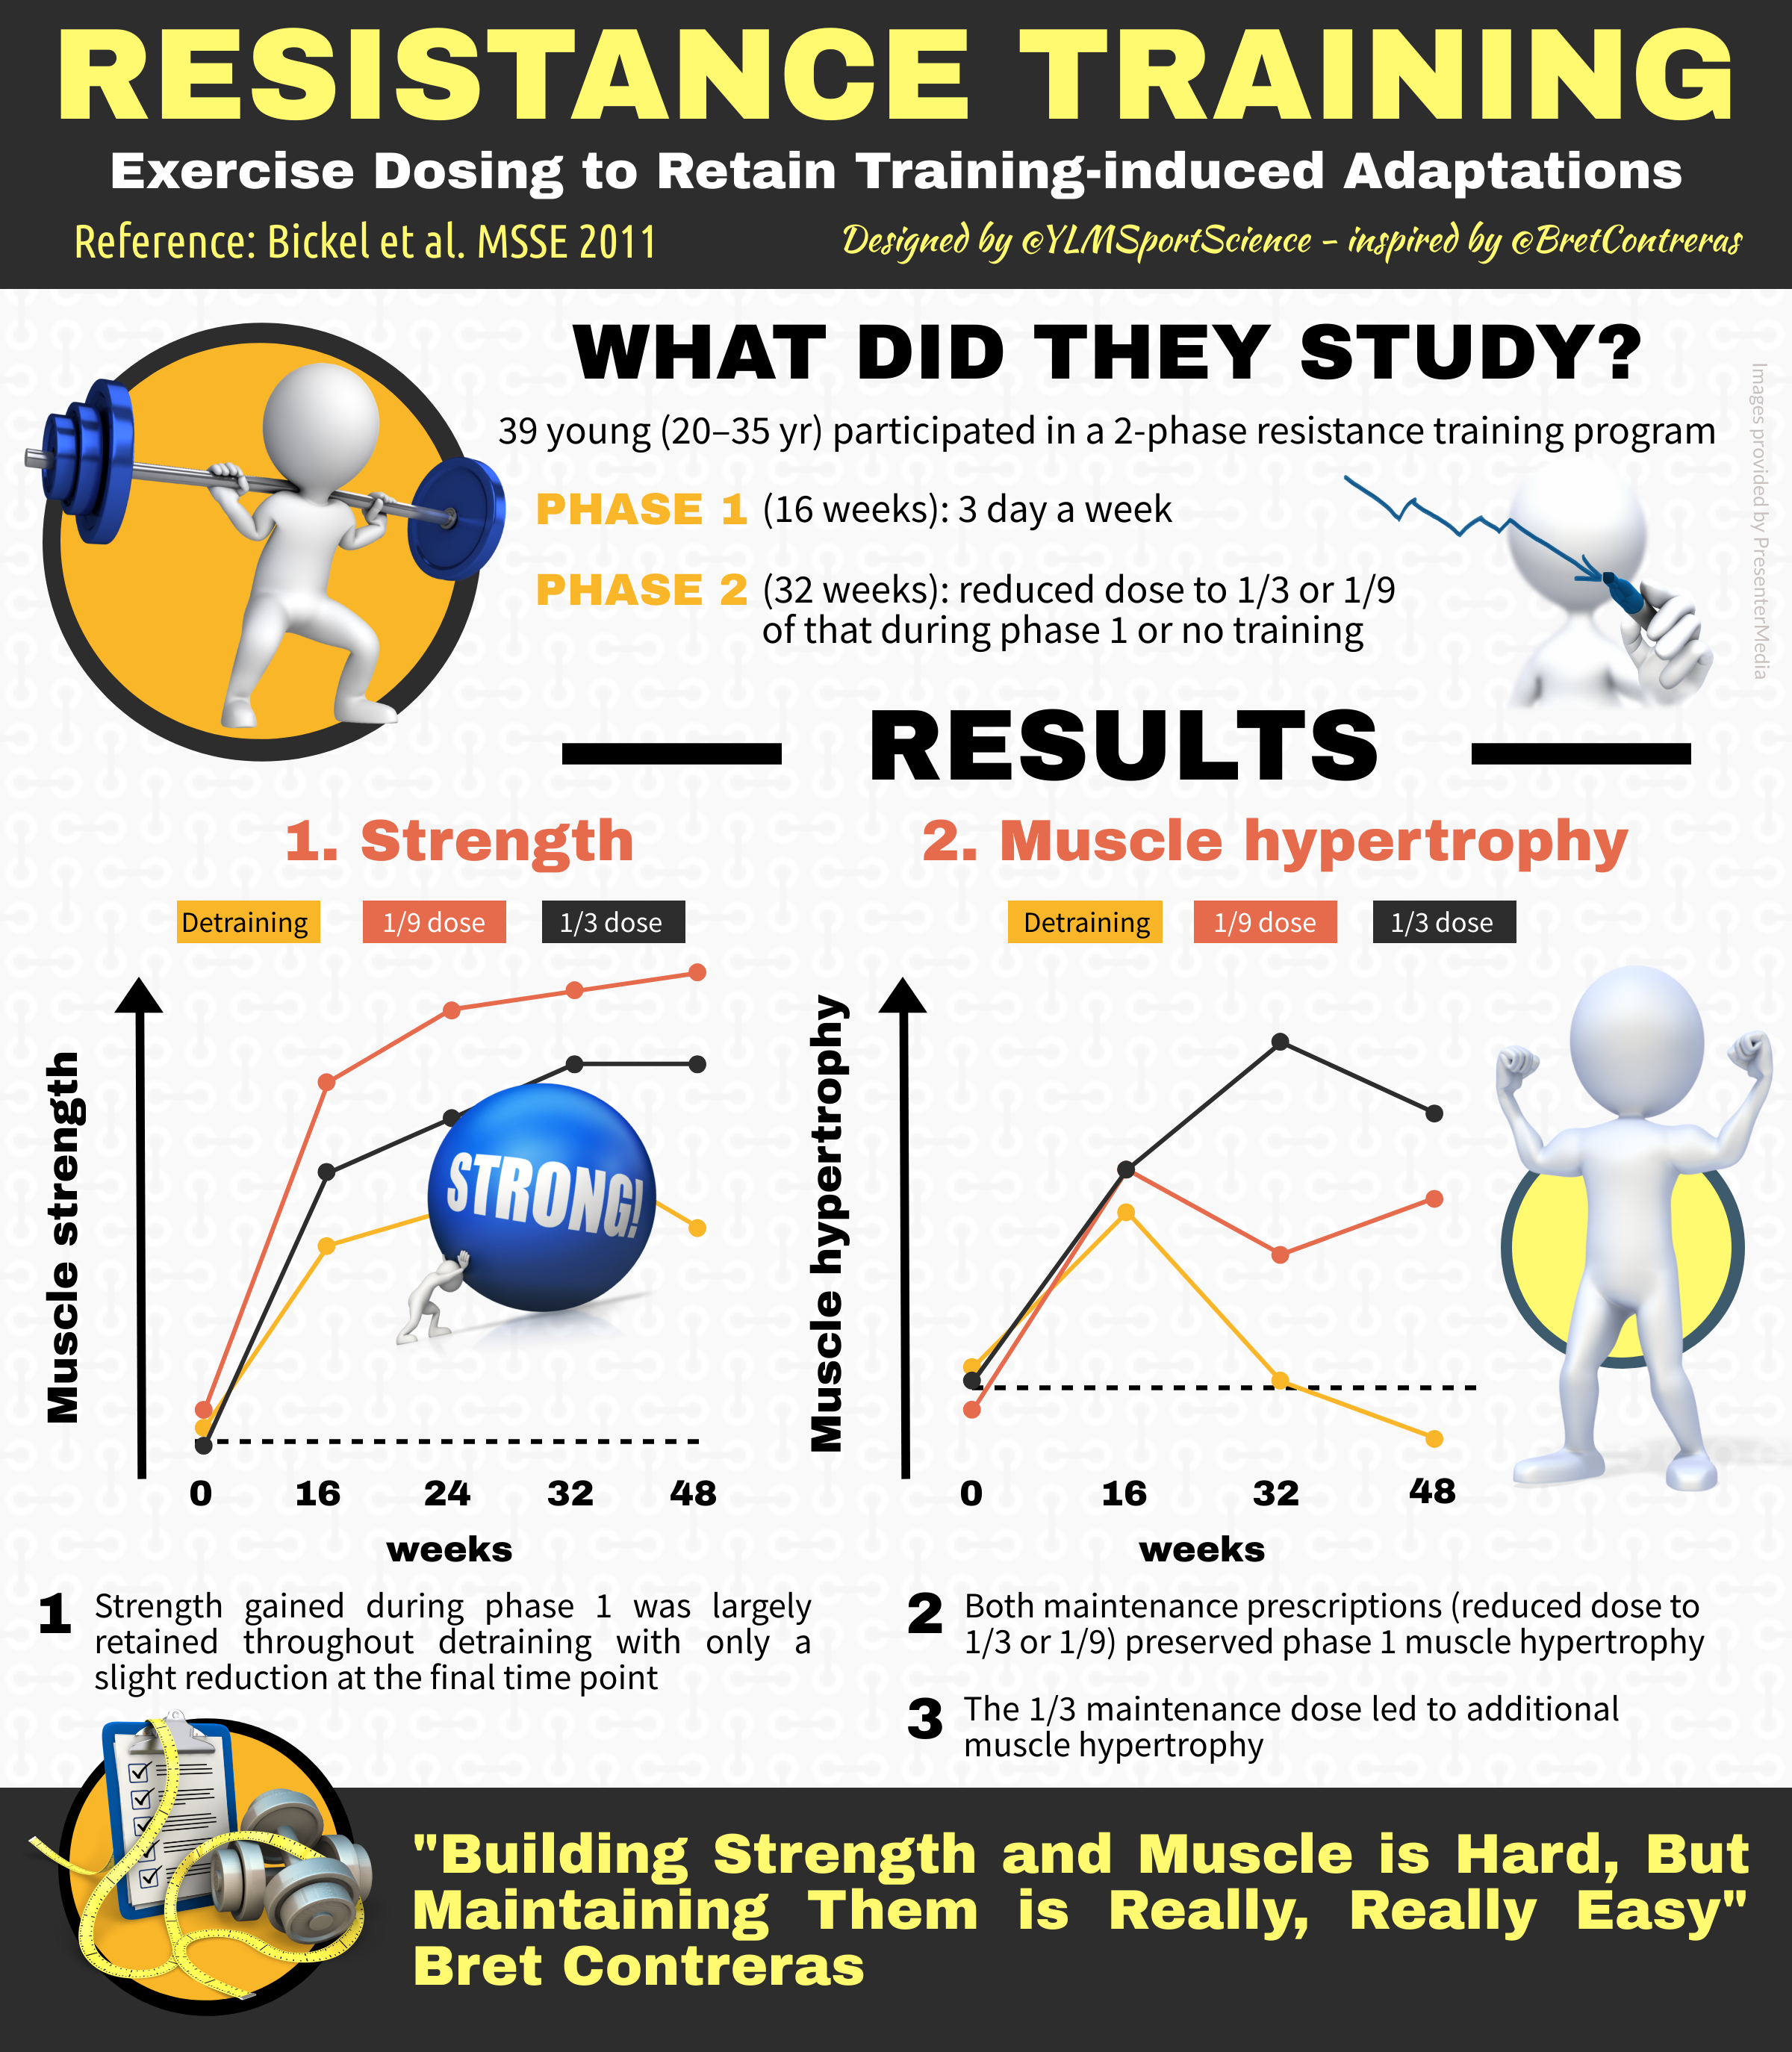 Resistance training: Exercise dosing to retain training-induced adaptations  – YLMSportScience